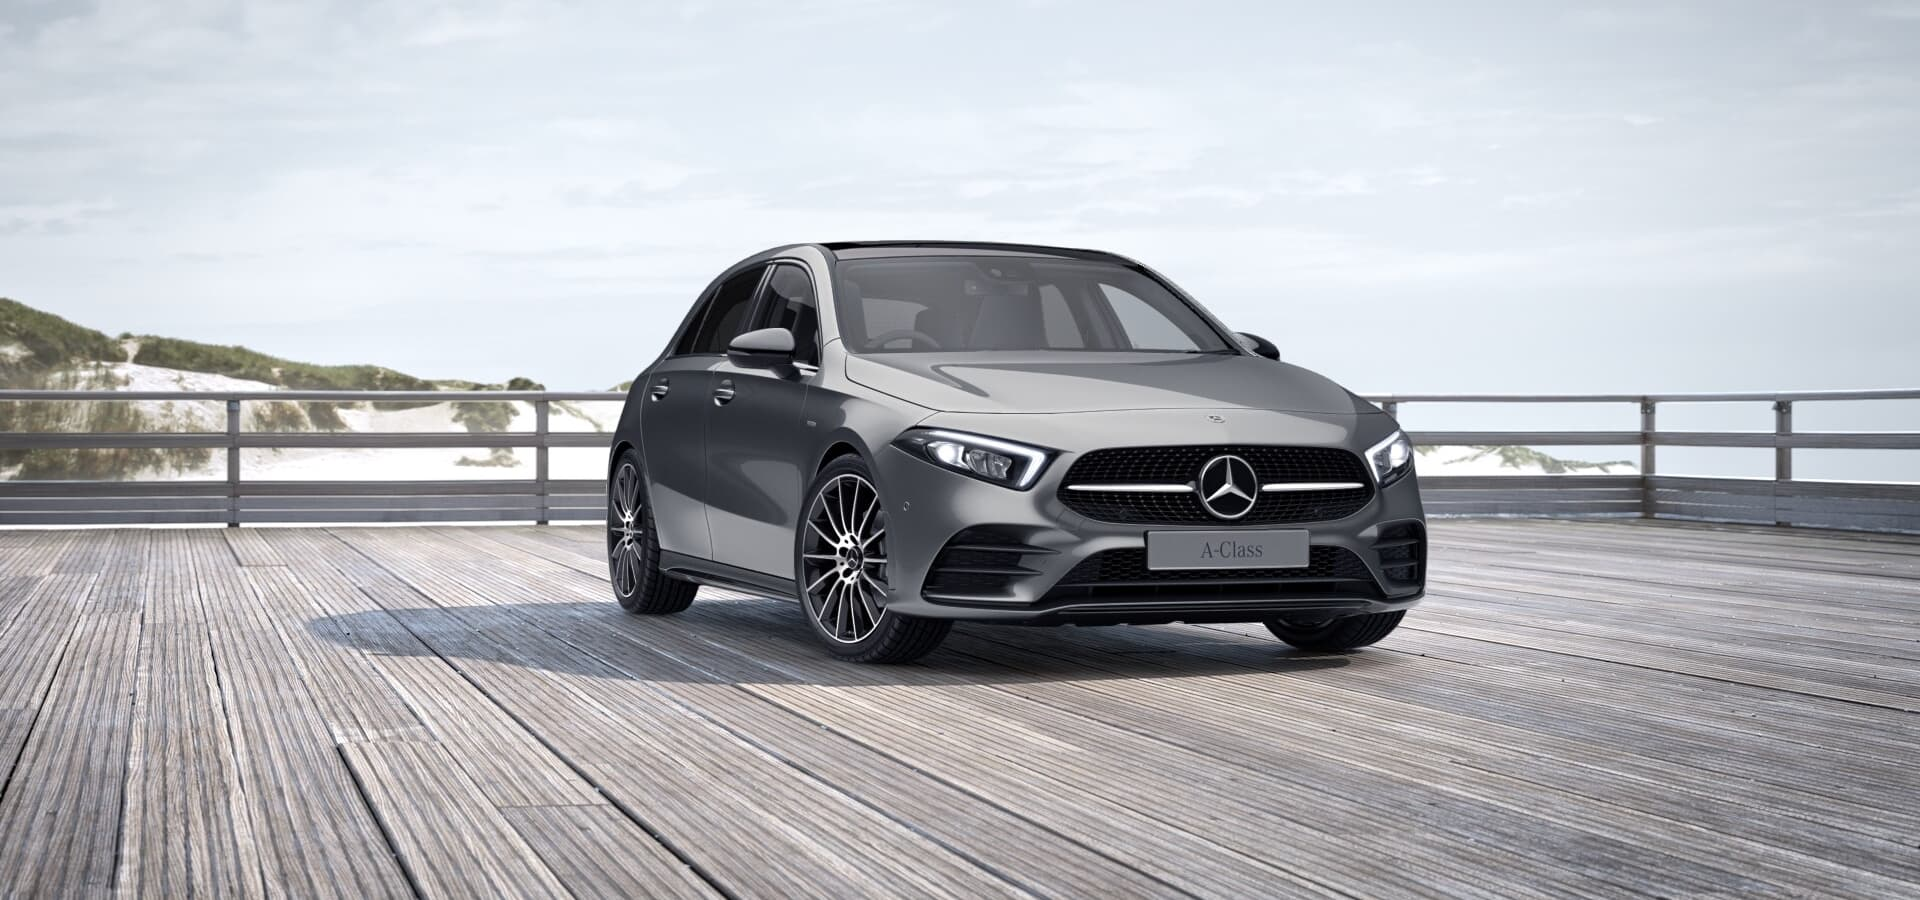 Mercedes-Benz A-Class Exclusive Edition